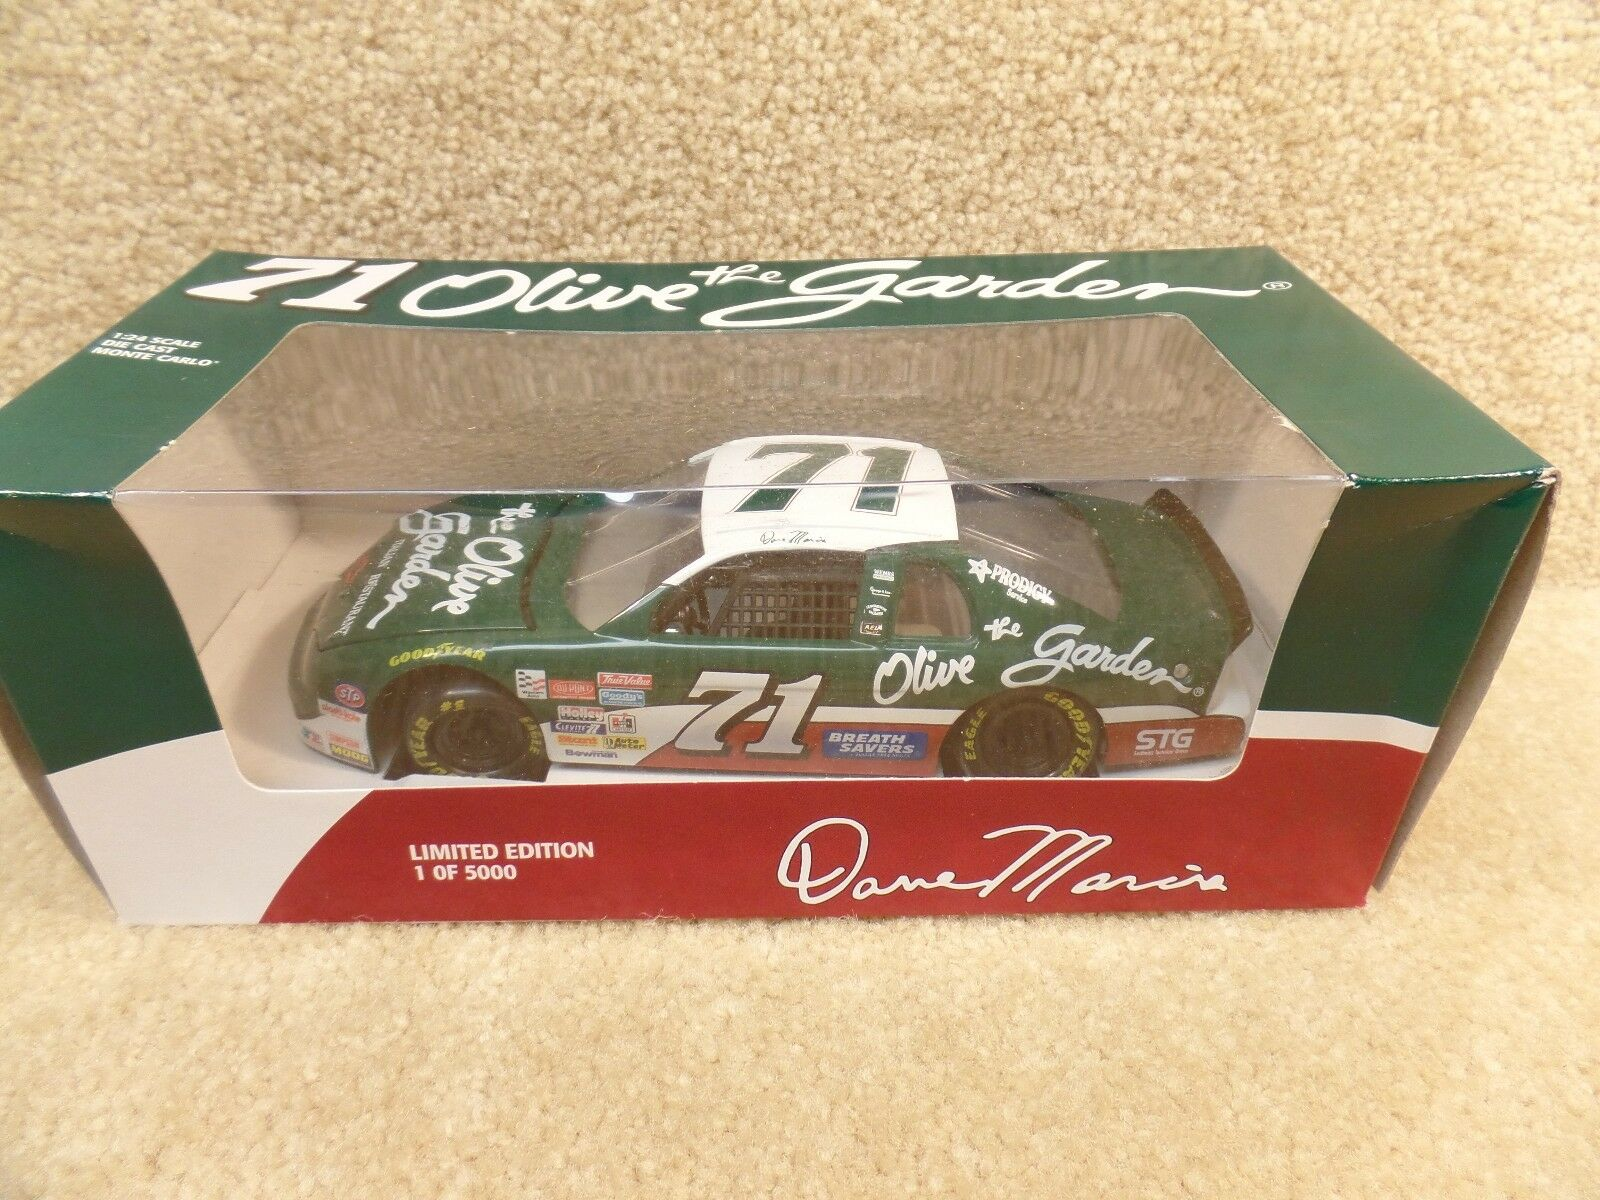 New 1995 Revell 1 24 Scale Diecast NASCAR Dave Marcis Olive Garden Monte Carlo